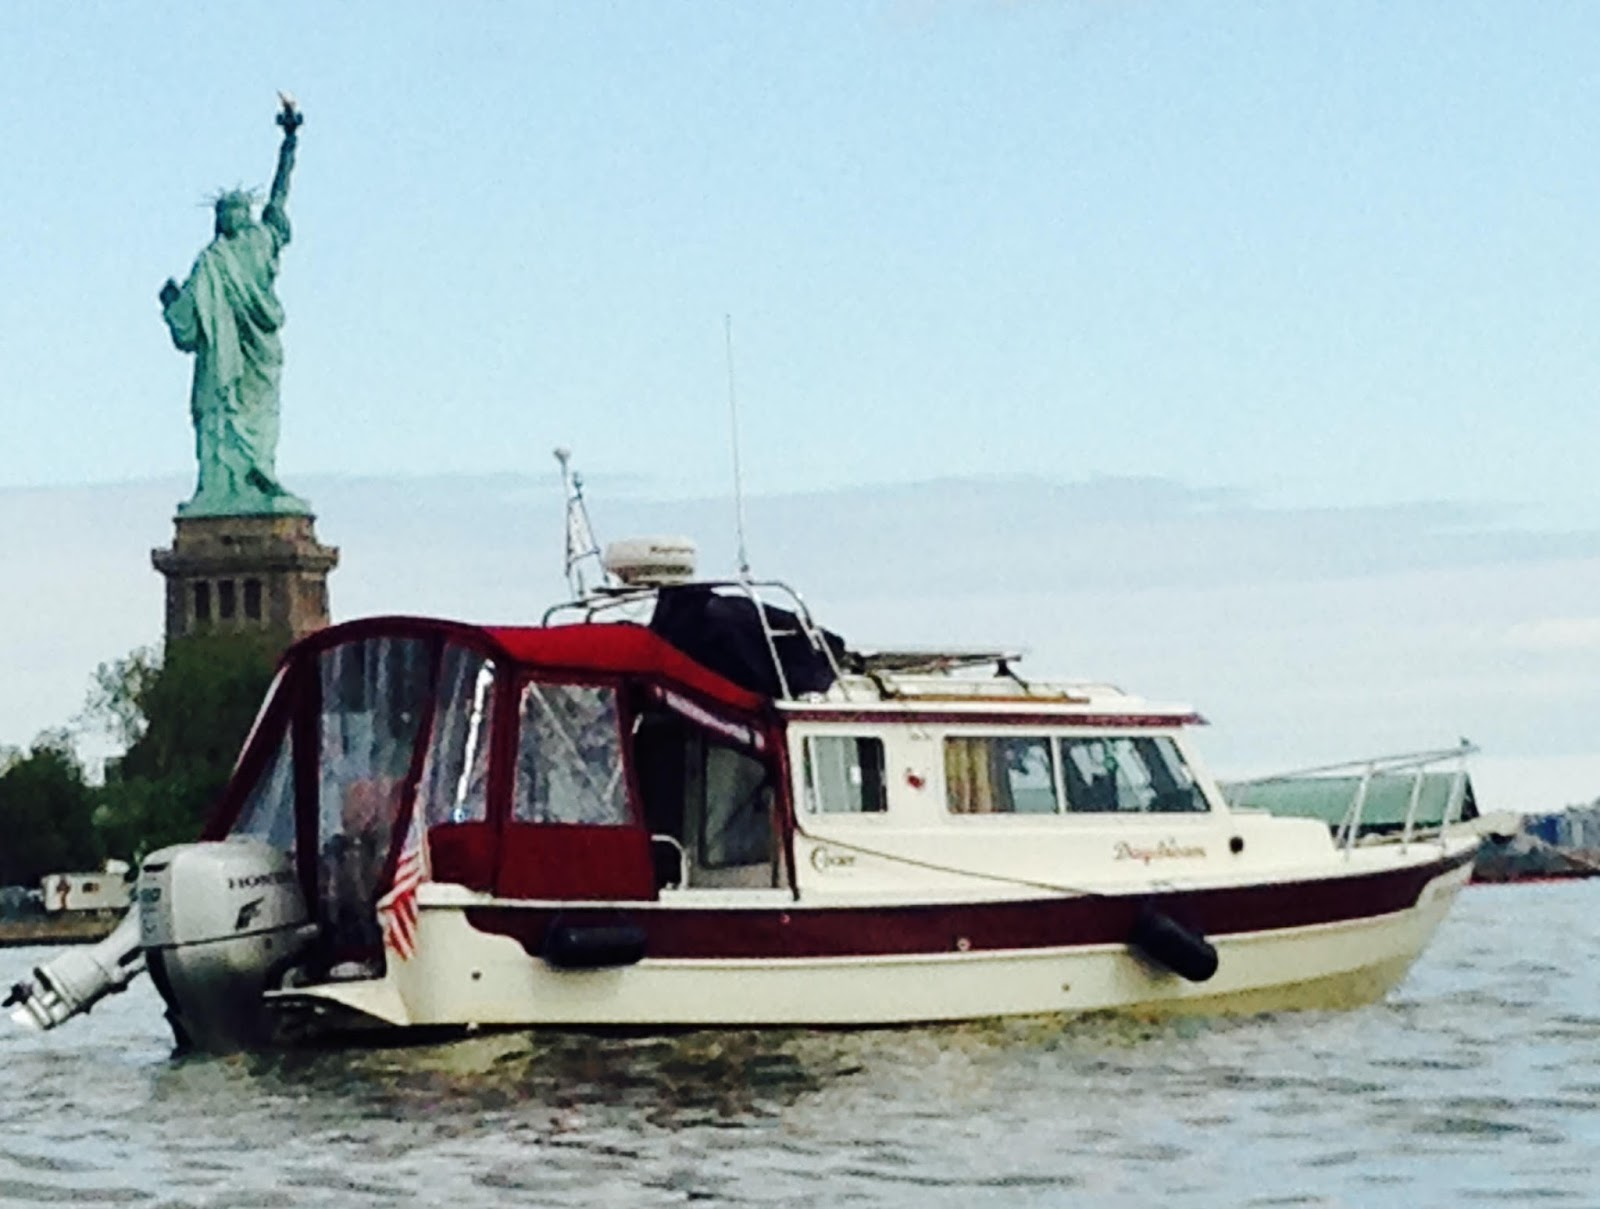 the greatness of liberty The story behind the poem on the statue of liberty emma lazarus's petrarchan sonnet is an awkward vehicle for defenses of american greatness—perhaps because so many of those who quote it miss .